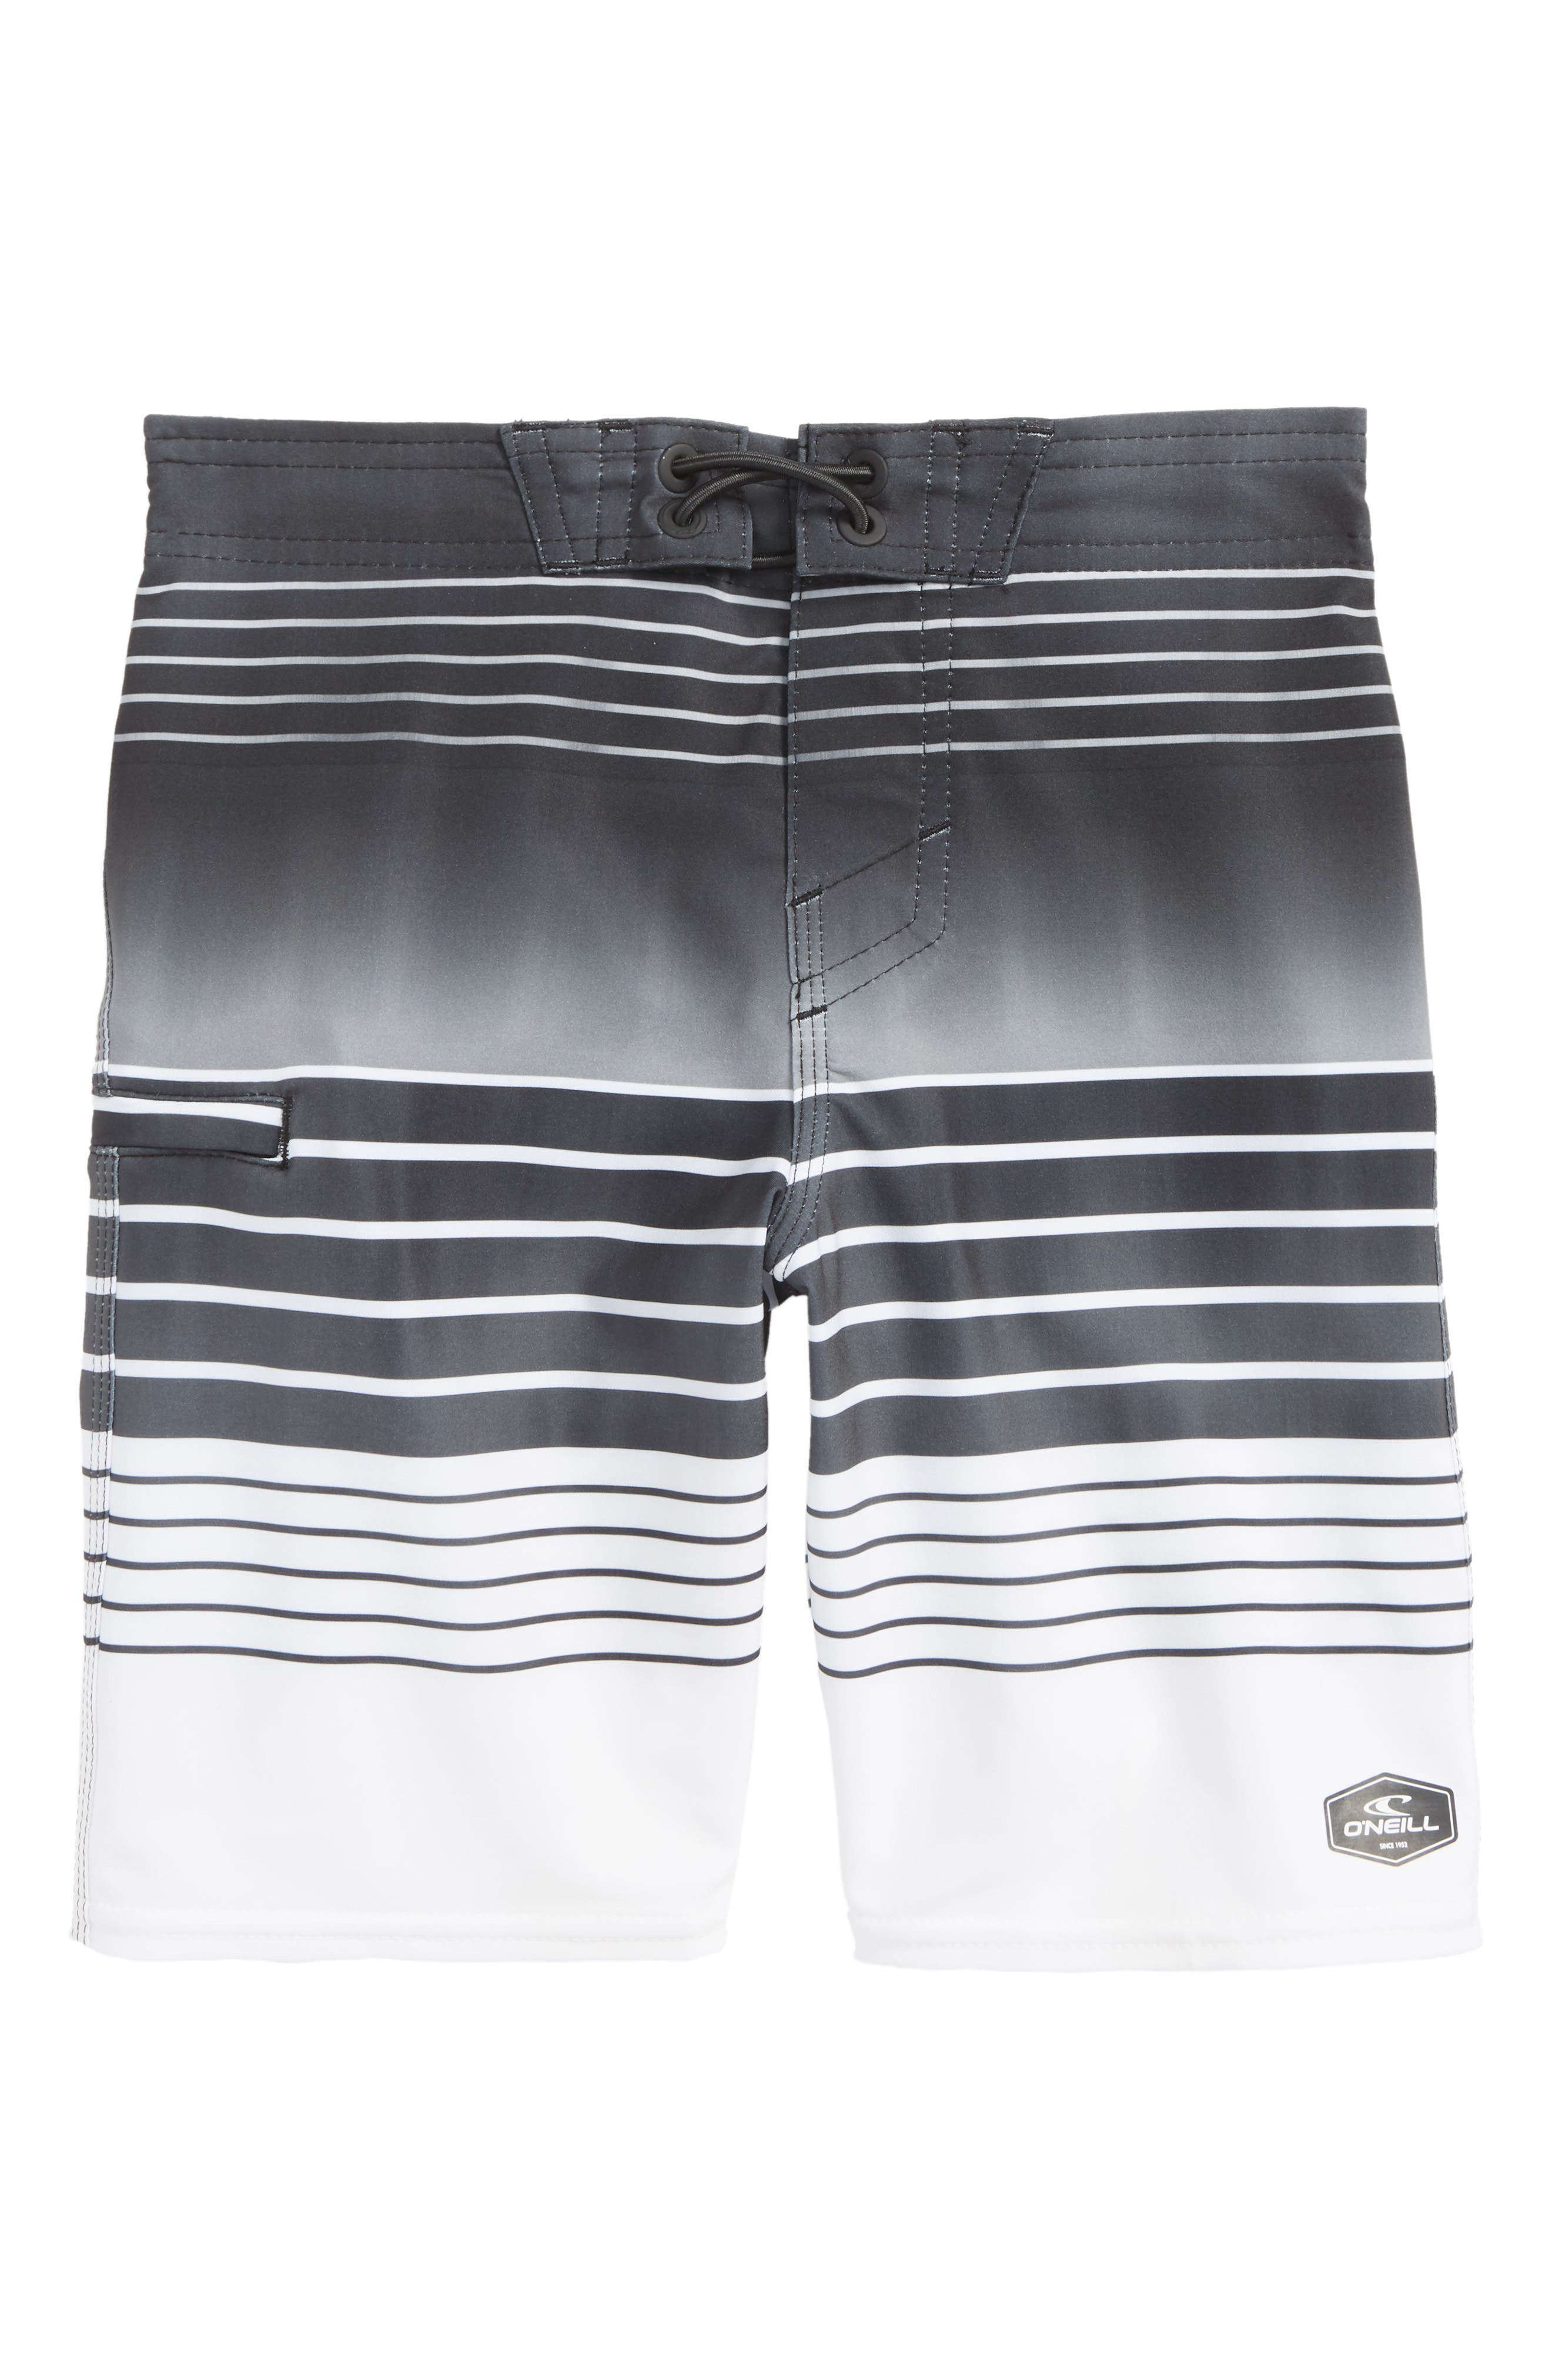 Hyperfreak Heist Board Shorts,                         Main,                         color,